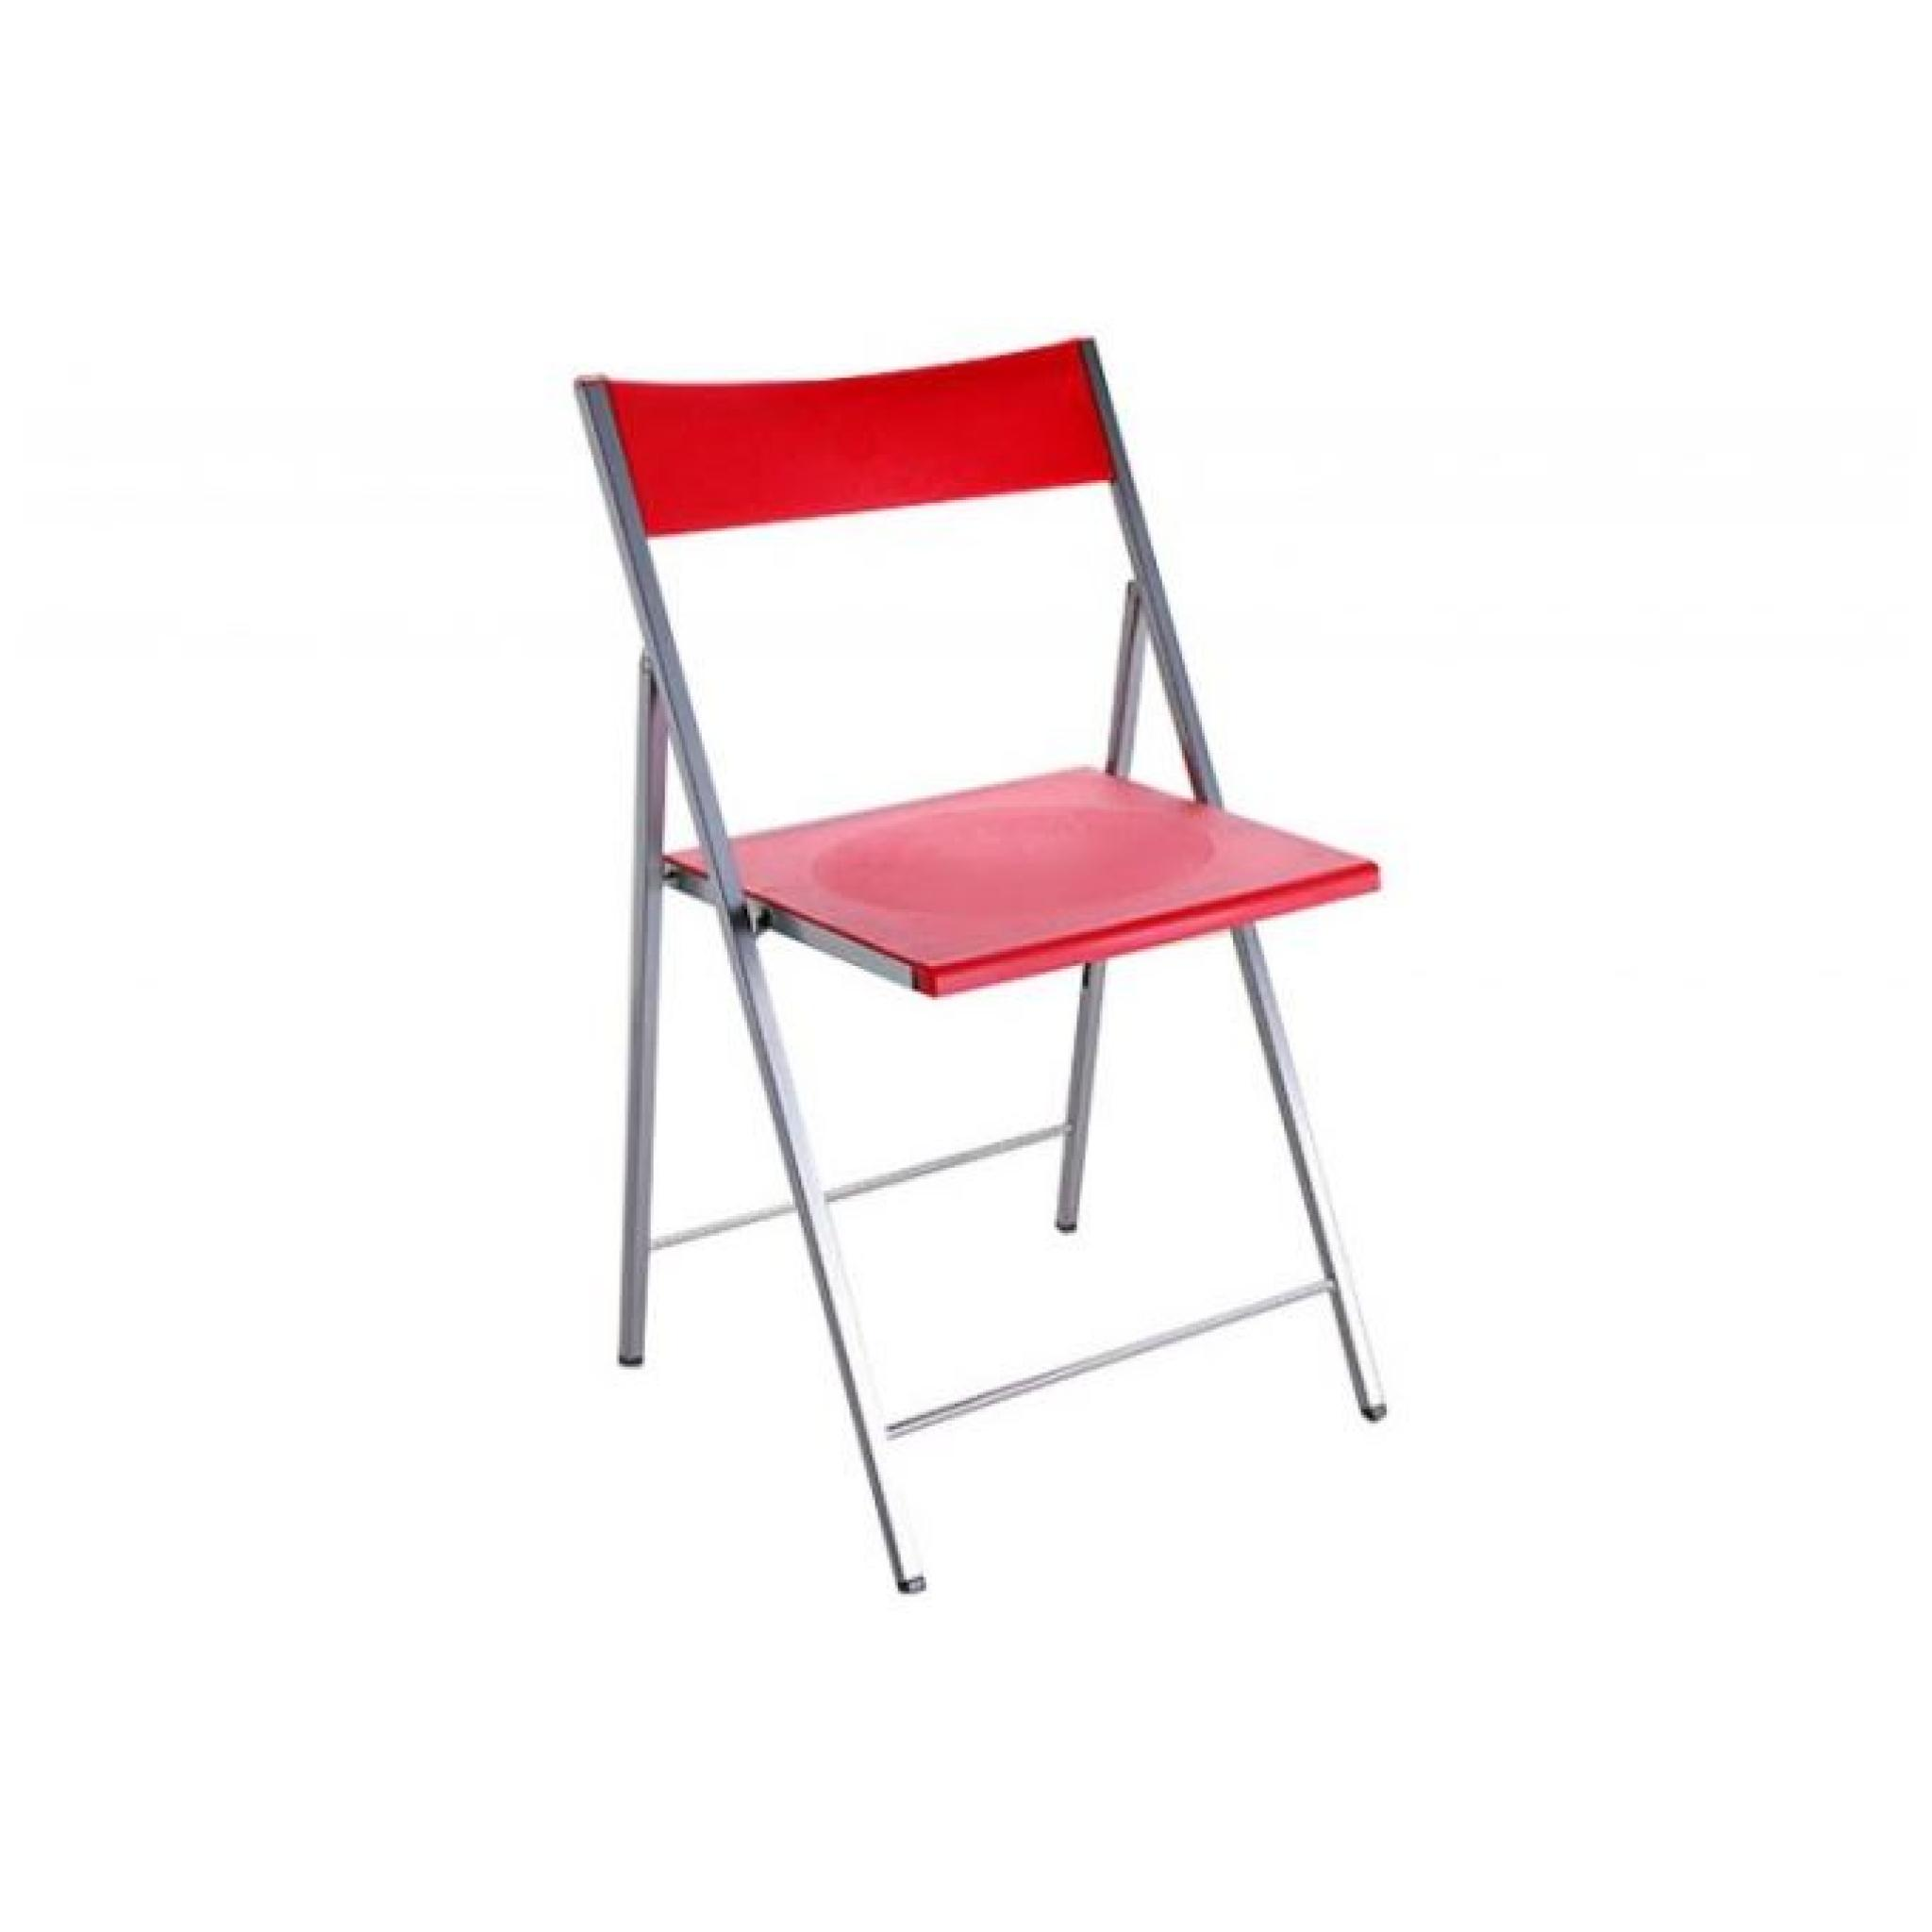 Chaise pliante rouge bilbao achat vente chaise salle a for Chaise pliante design